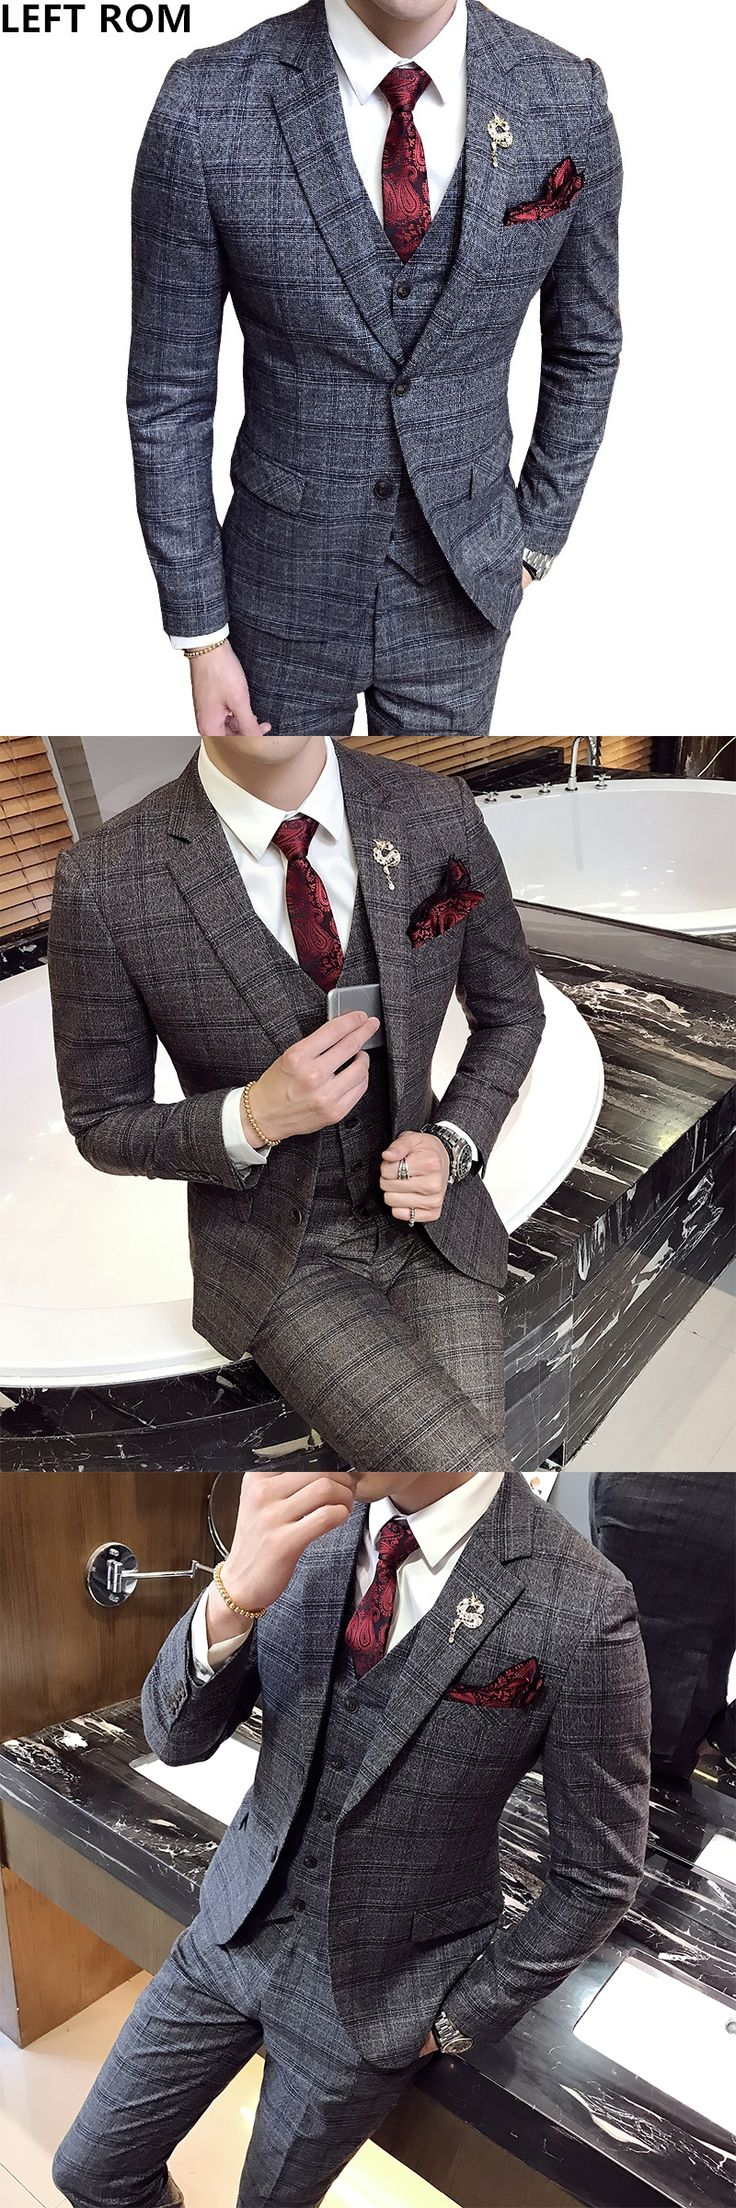 LEFT ROM Plaid suit men's casual groom wedding suit vest trousers three sets/2017 Male senior Comfortable Business affairs Suit